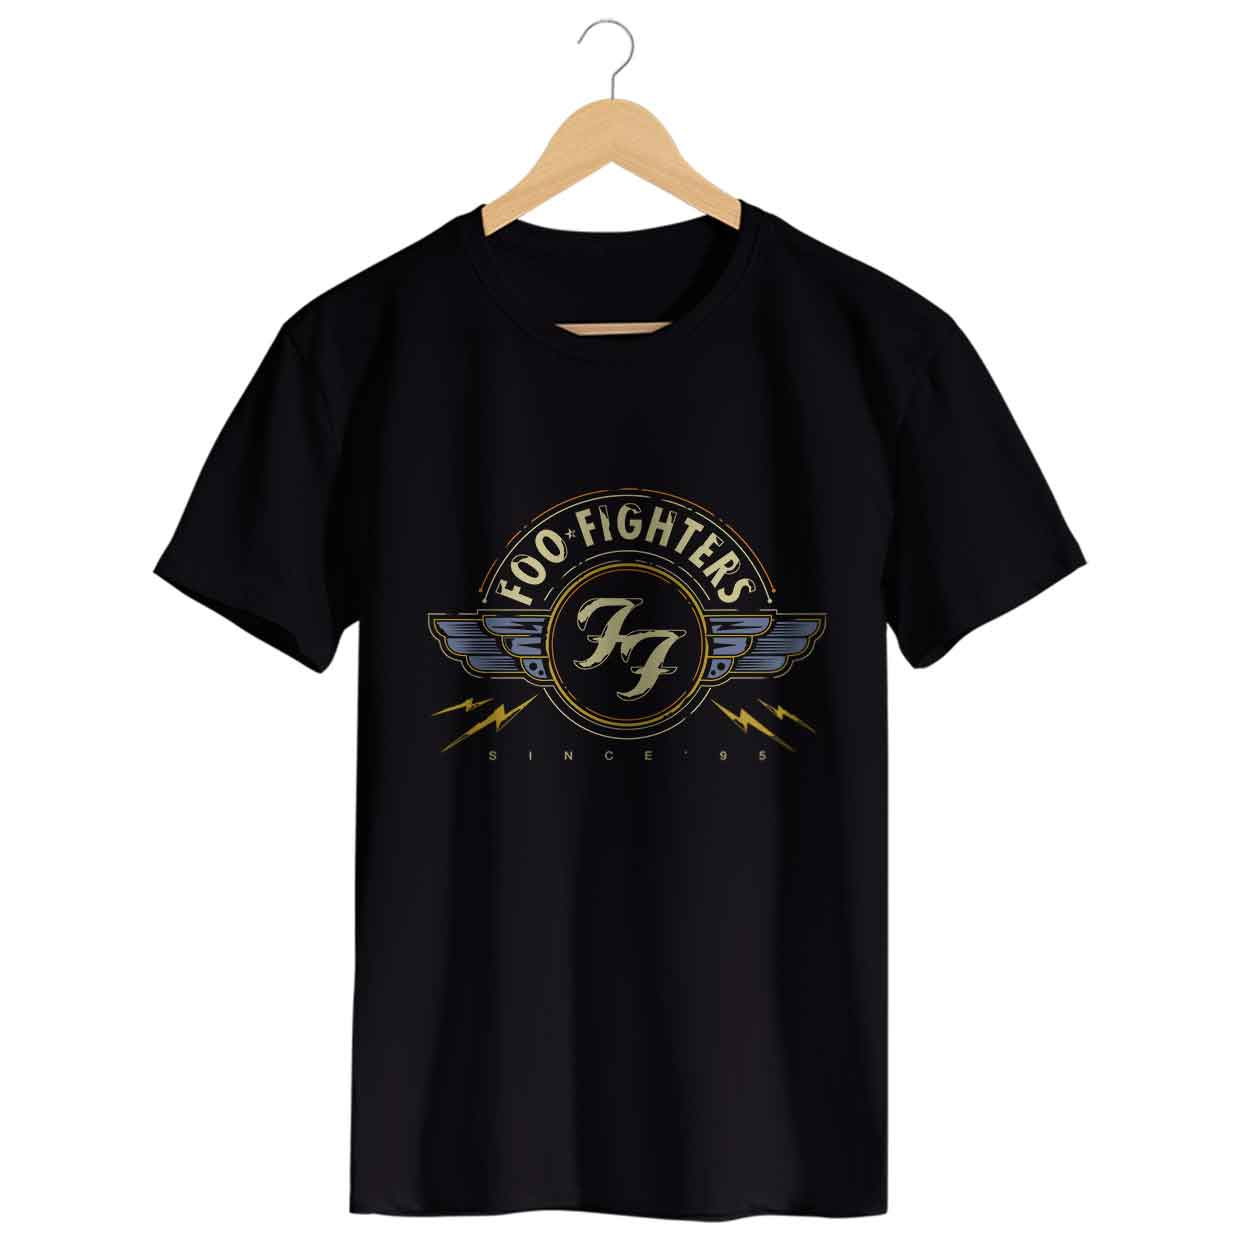 Camiseta - Foo Fighters - Since 95 - Masculino